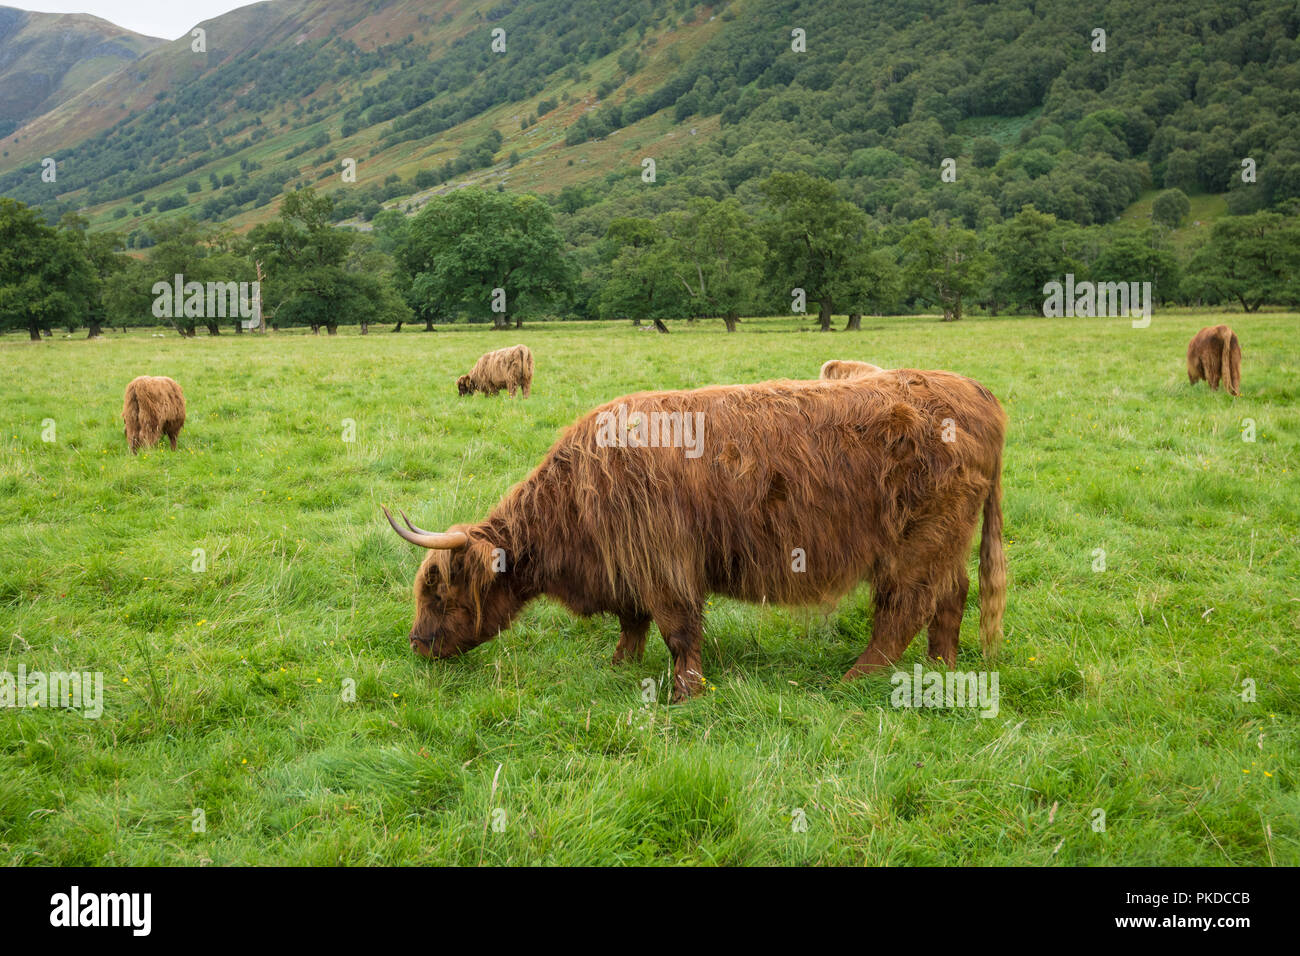 Scottish Highland cattle, Ben Nevis, Scottish Highlands, Scotland, UK - Stock Image